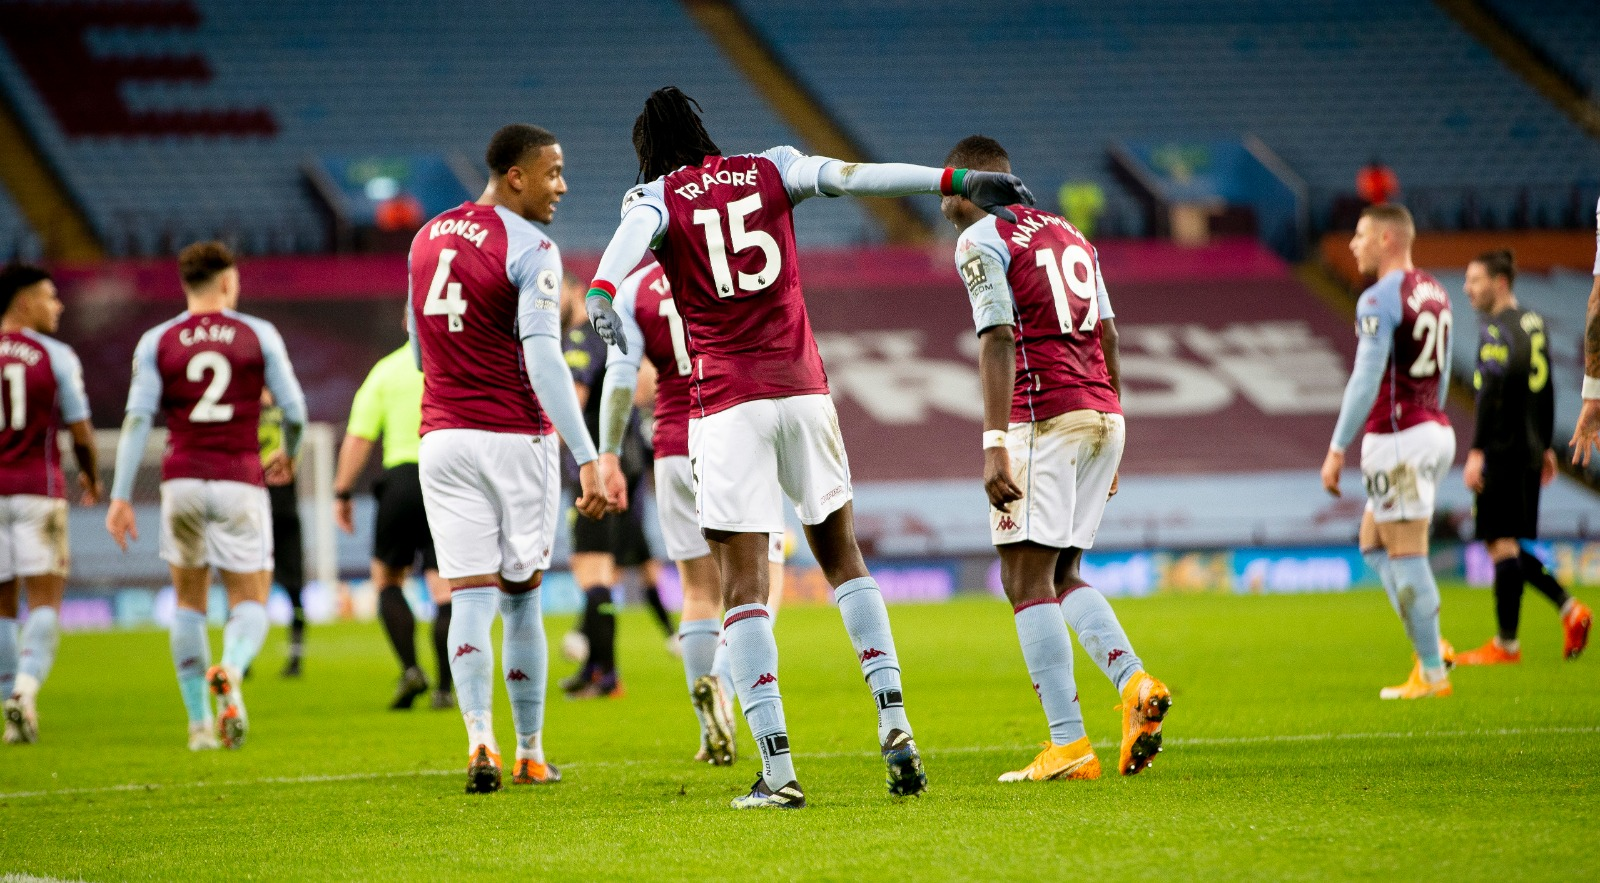 Fantastic Nakamba plays blinder in Aston Villa win - soccer24.co.zw